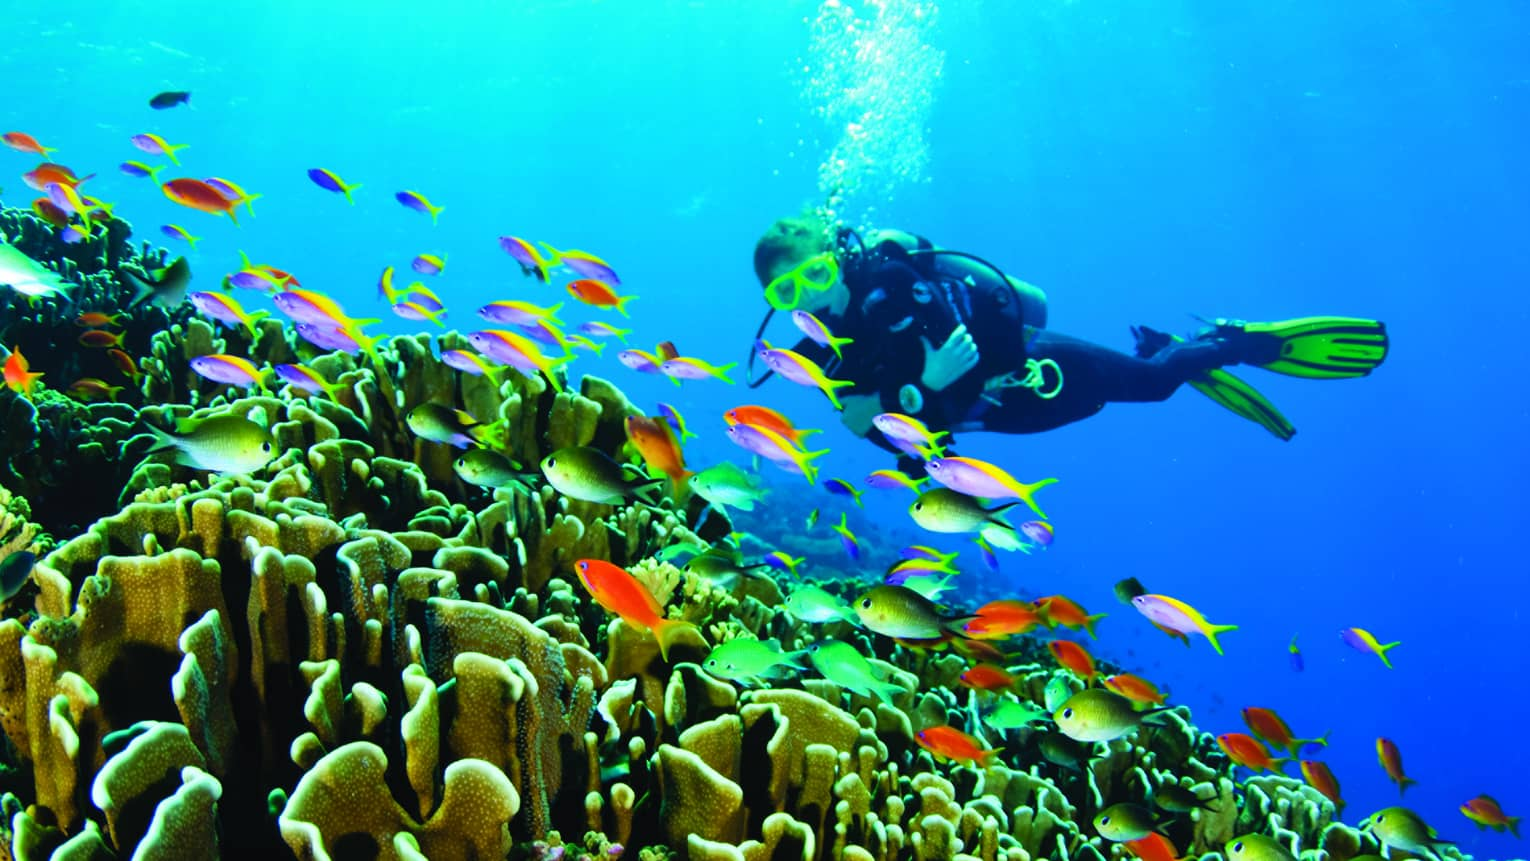 Scuba diver swims over colourful tropical fish, coral